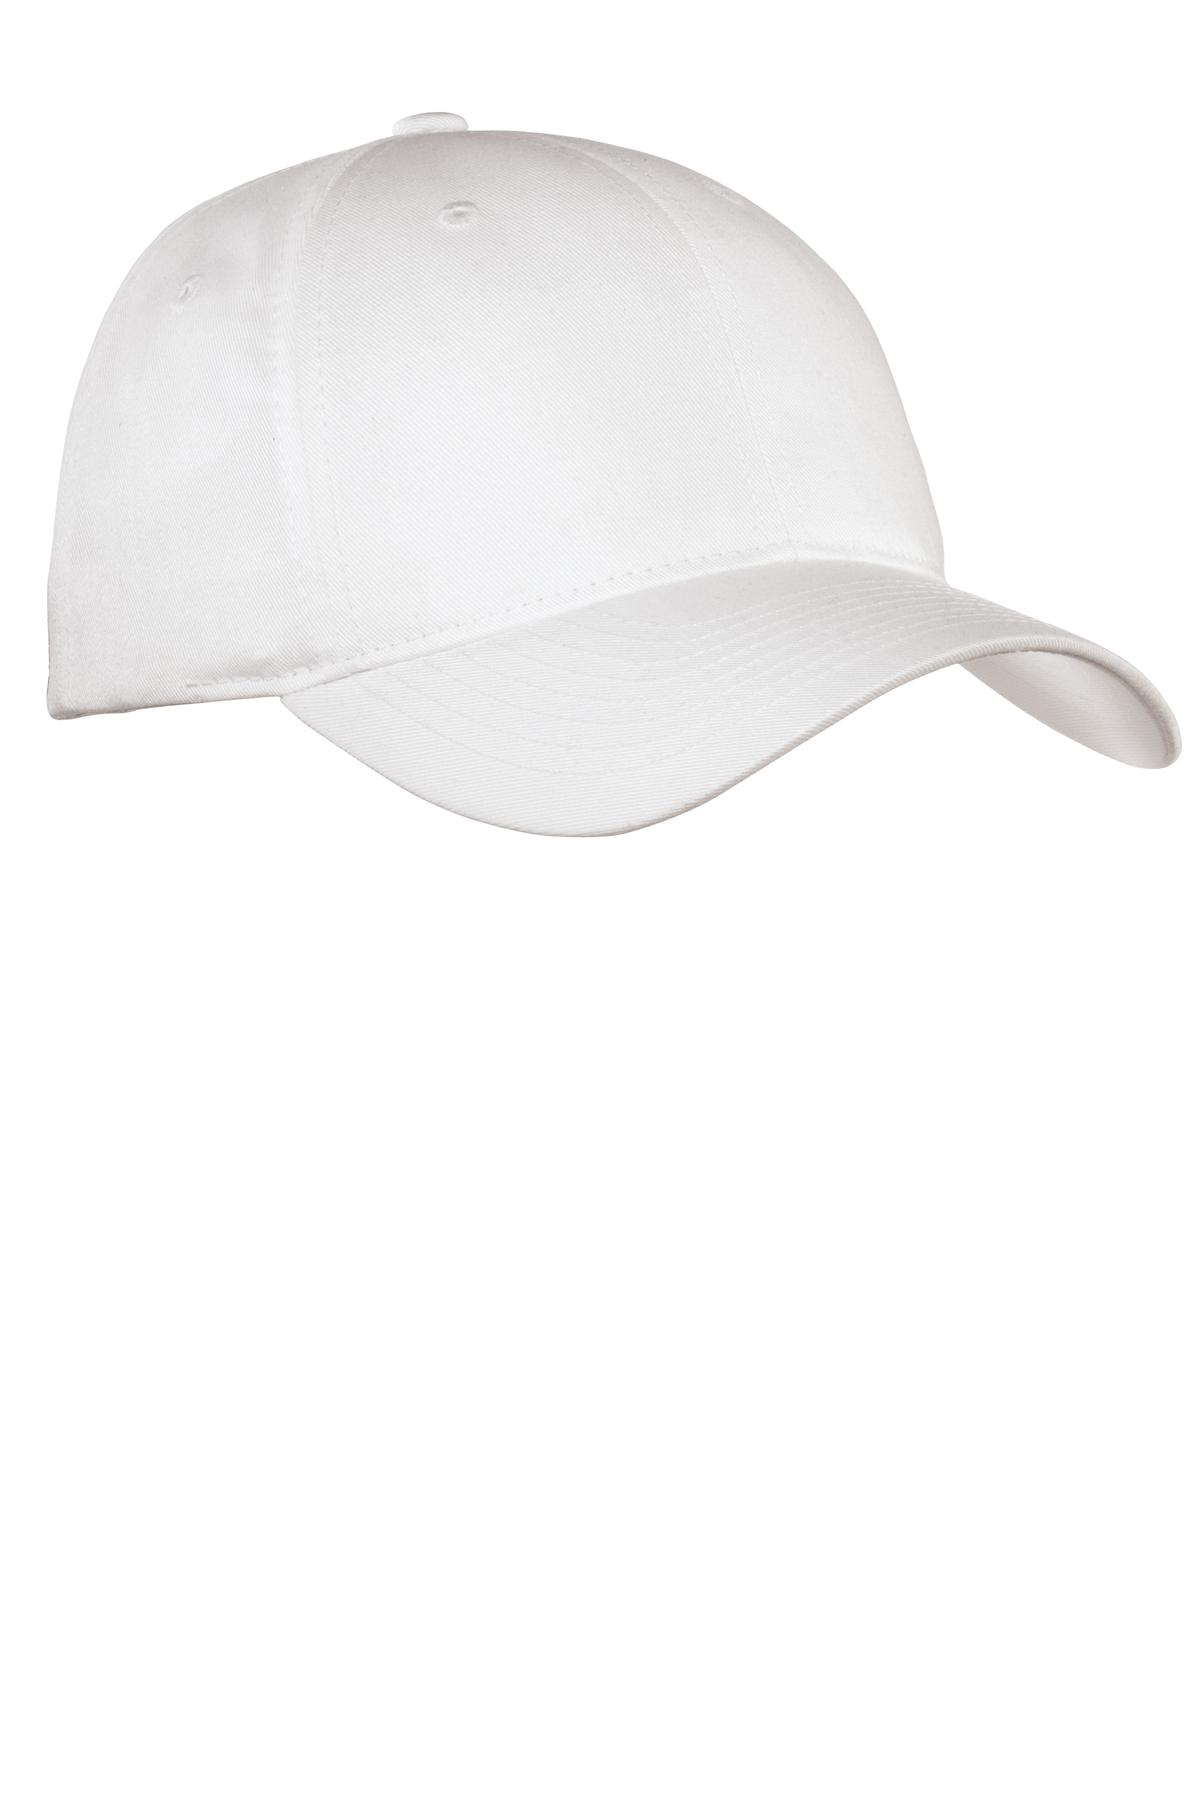 Port Authority ®  Fine Twill Cap.  C800 - White